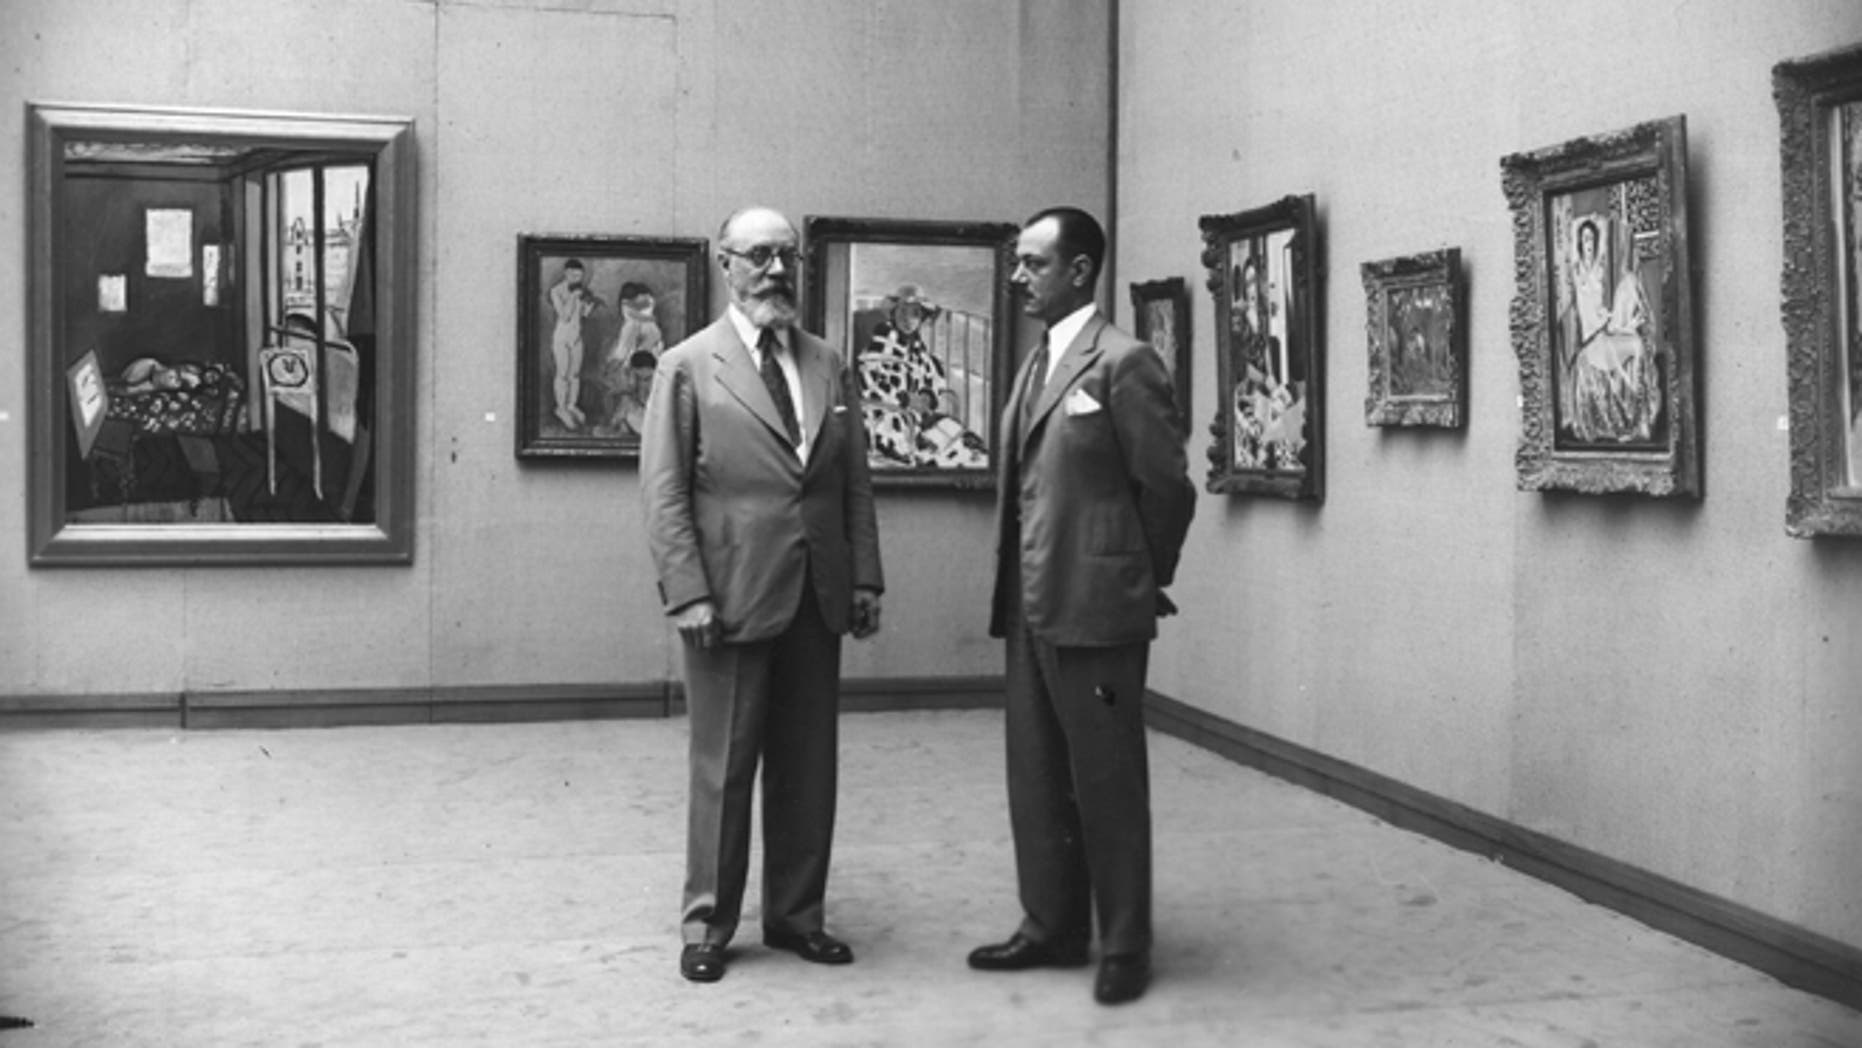 1931:  The French painter Henri Matisse (1869 - 1954) (left) at an exhibition of his work at the Galerie Georges Petit, Paris. The exhibition was organised by the collector Etienne Bignou (right).  (Photo by Hulton Archive/Getty Images)